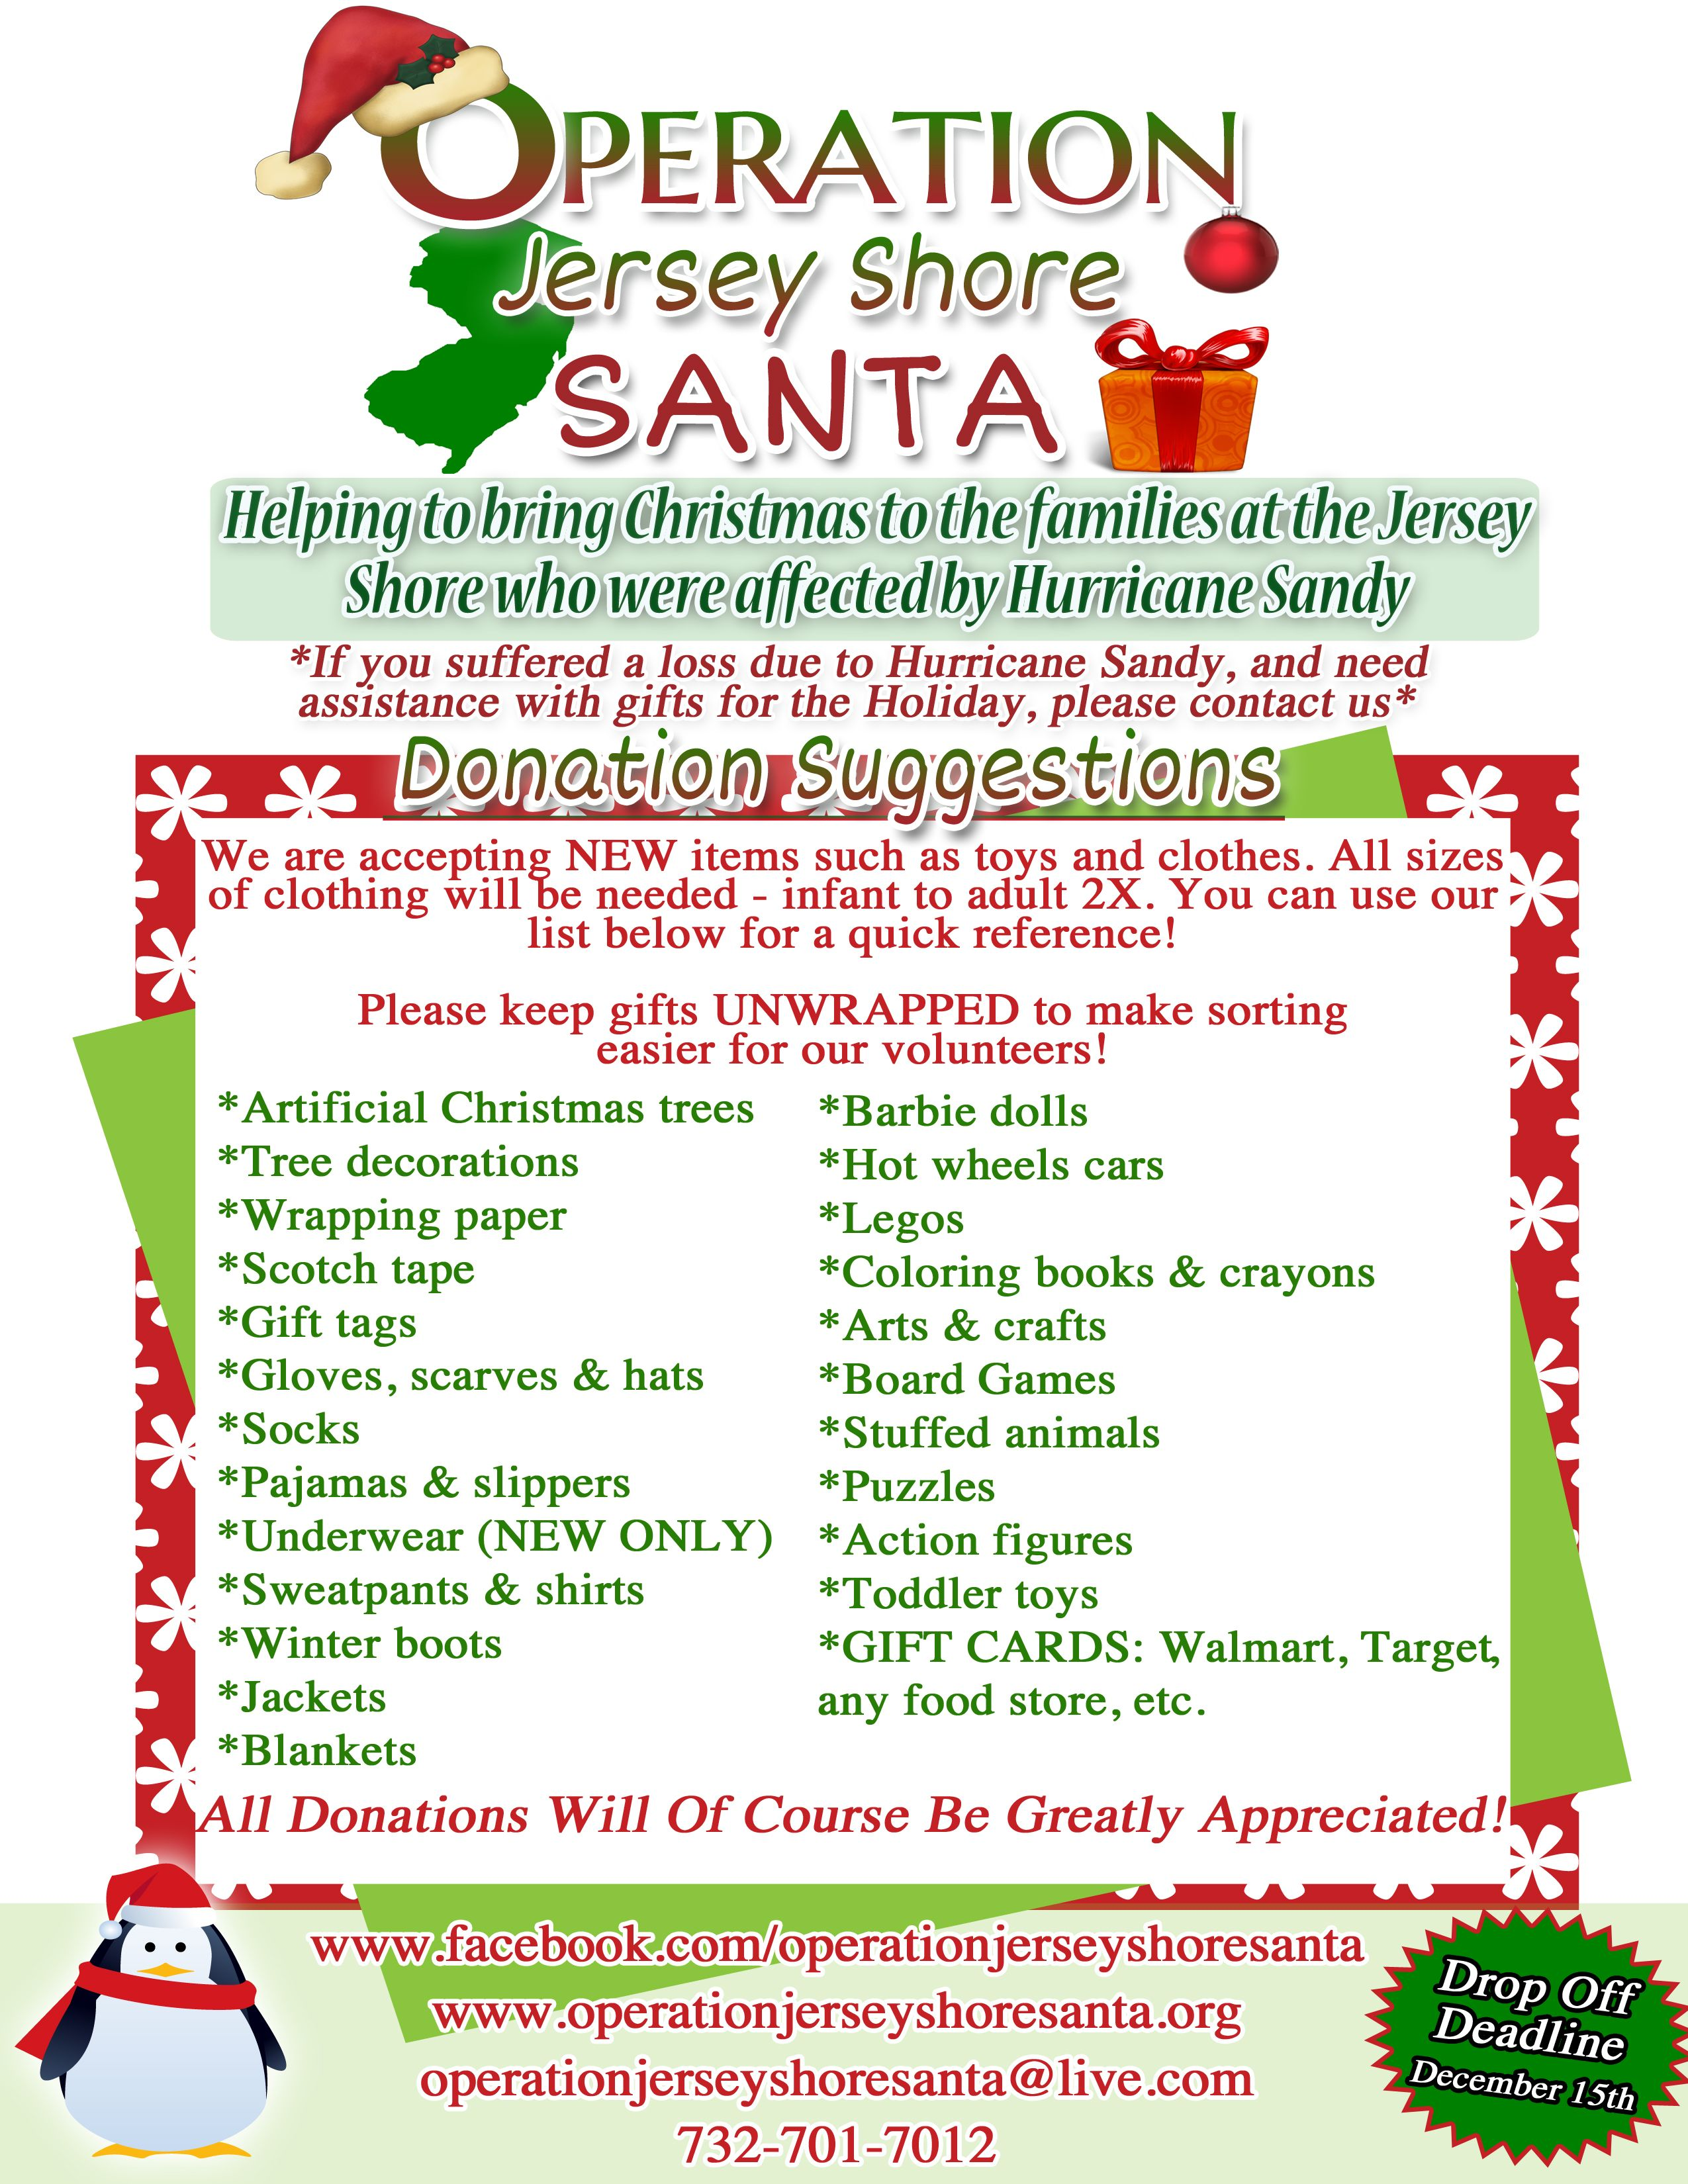 Salons for the Jersey Shore Operation Jersey Shore Santa